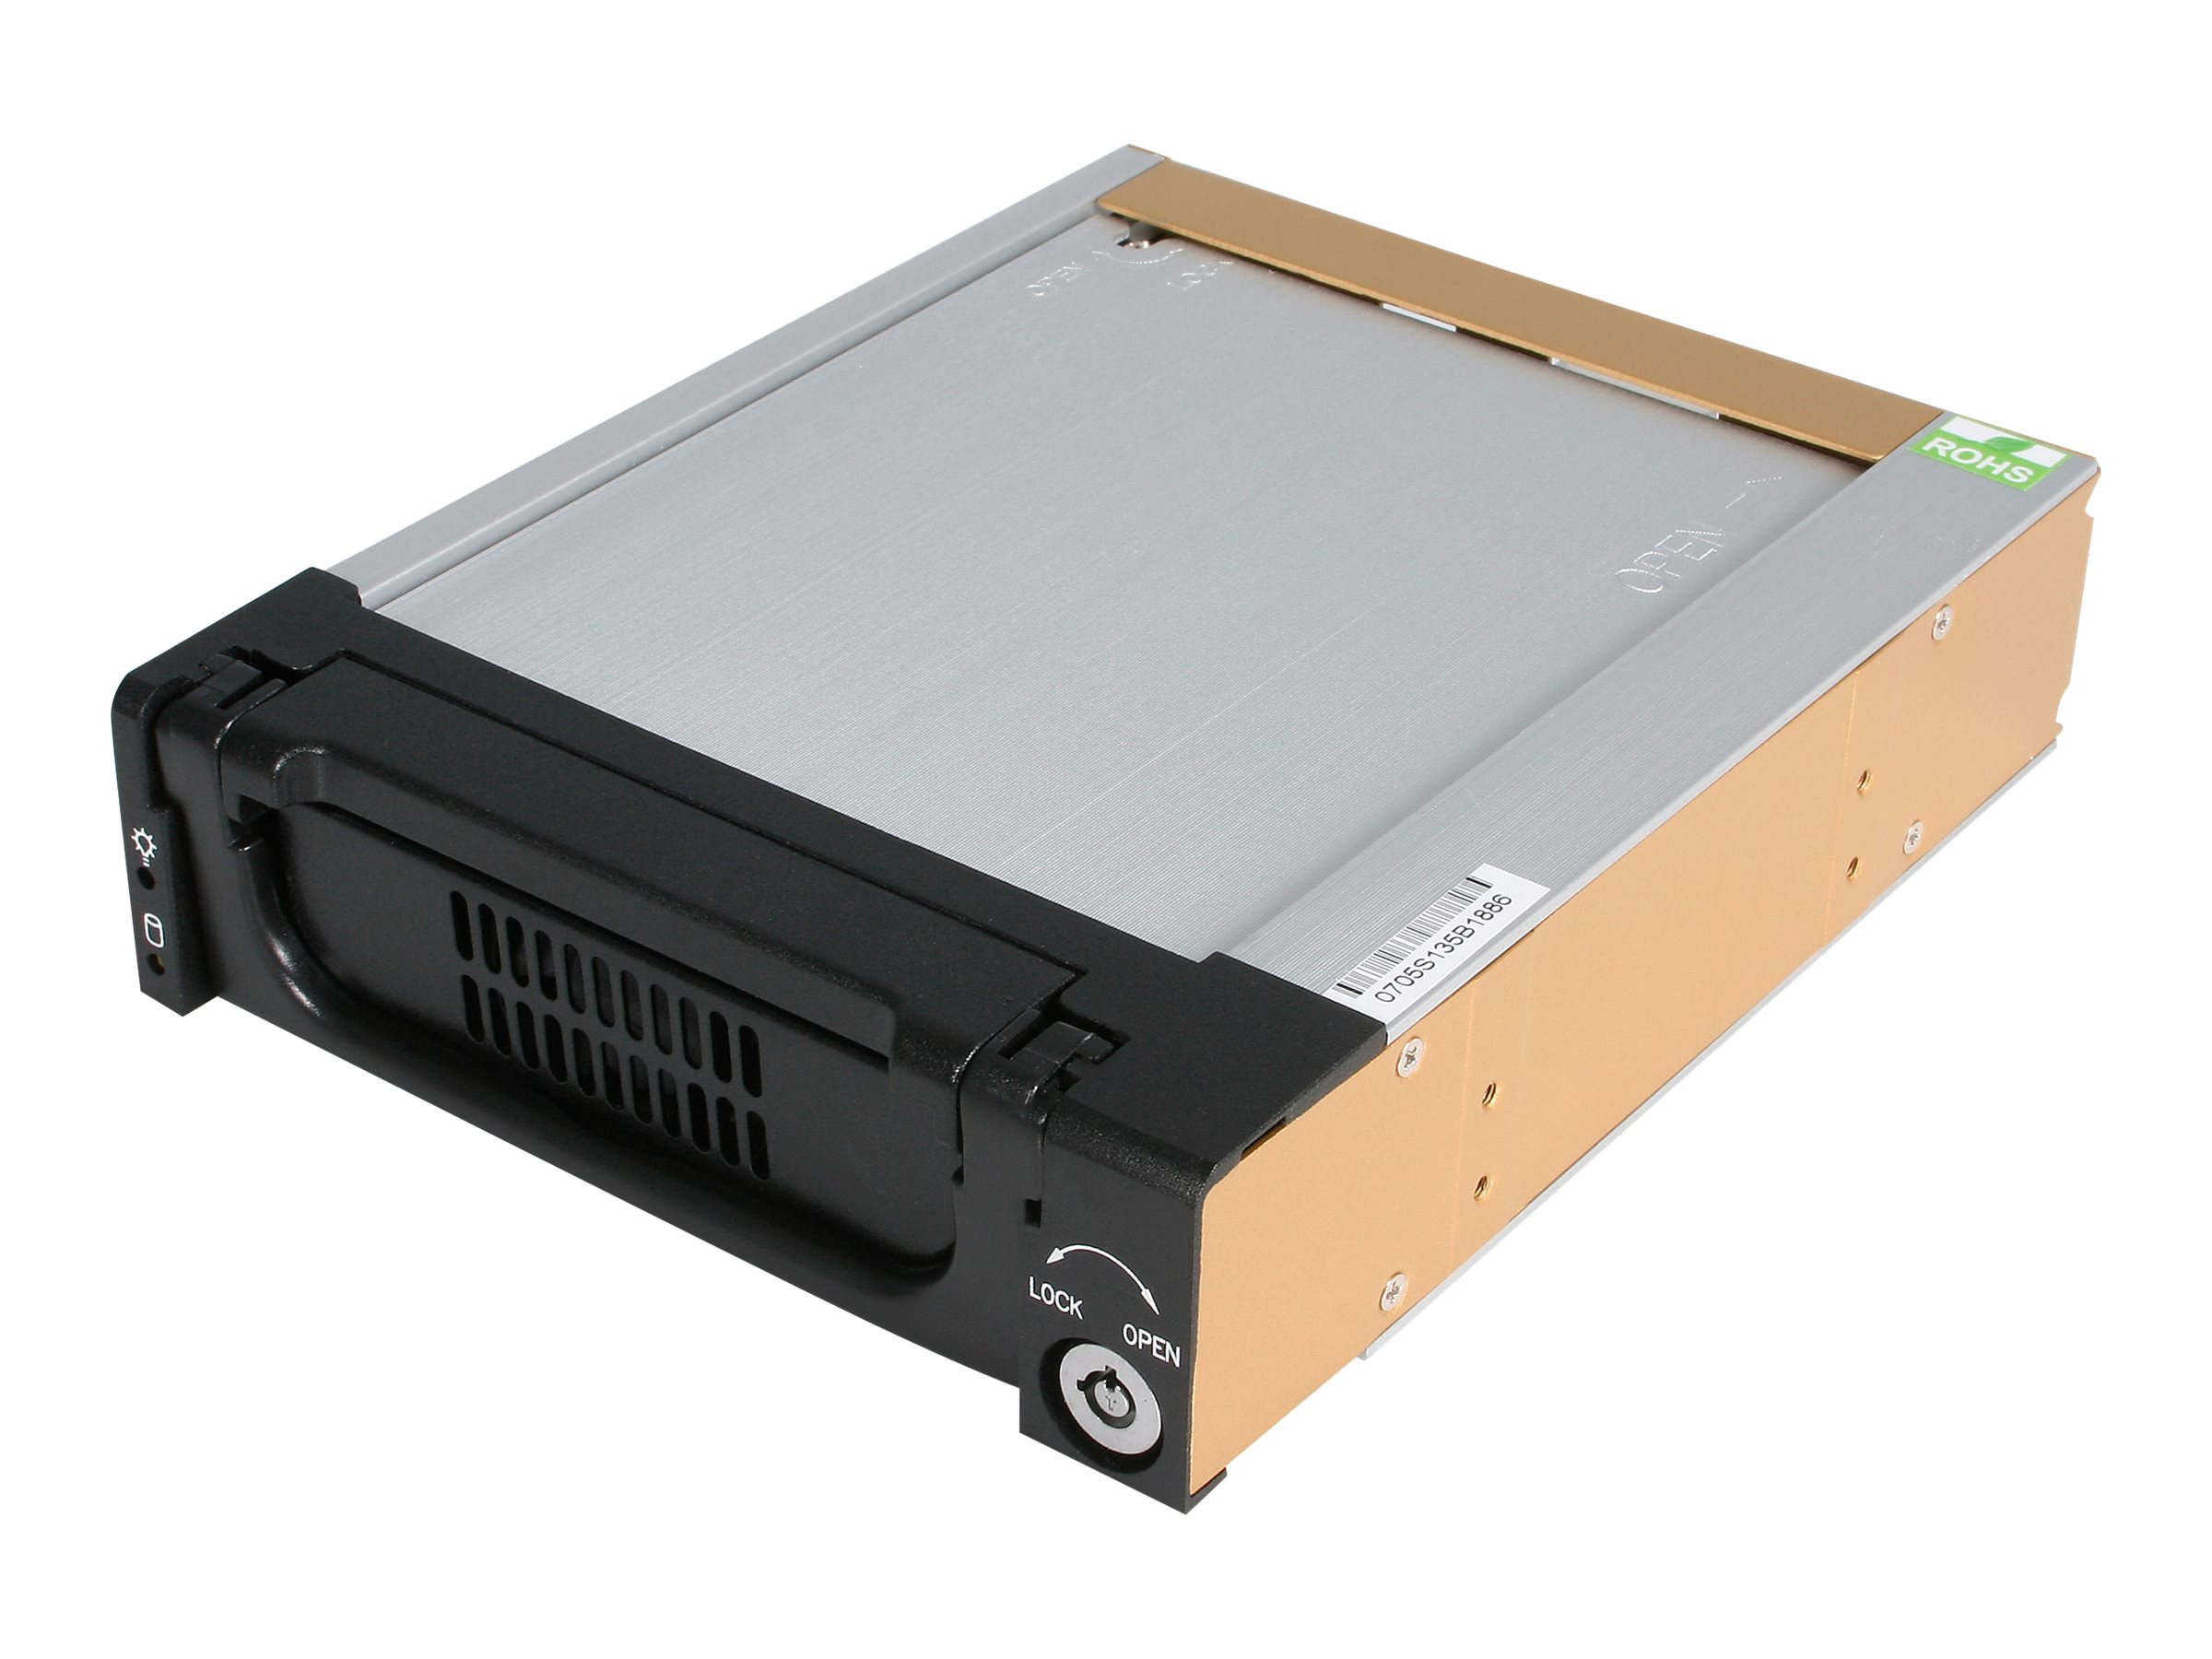 StarTech.com Black Aluminum 5.25in Rugged SATA Hard Drive Mobile Storage Rack Drawer